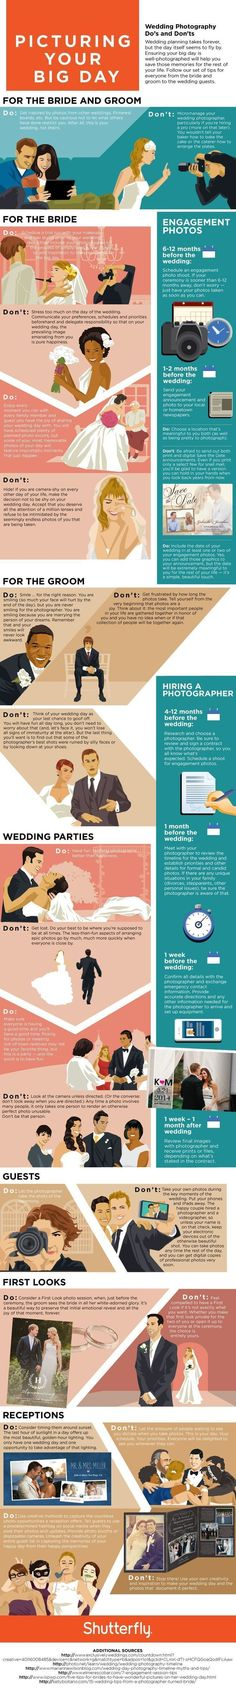 Plan Out a Picture Perfect Wedding Day With These Handy Photography Tips (INFOGRAPHIC) #weddingplanninginfographic